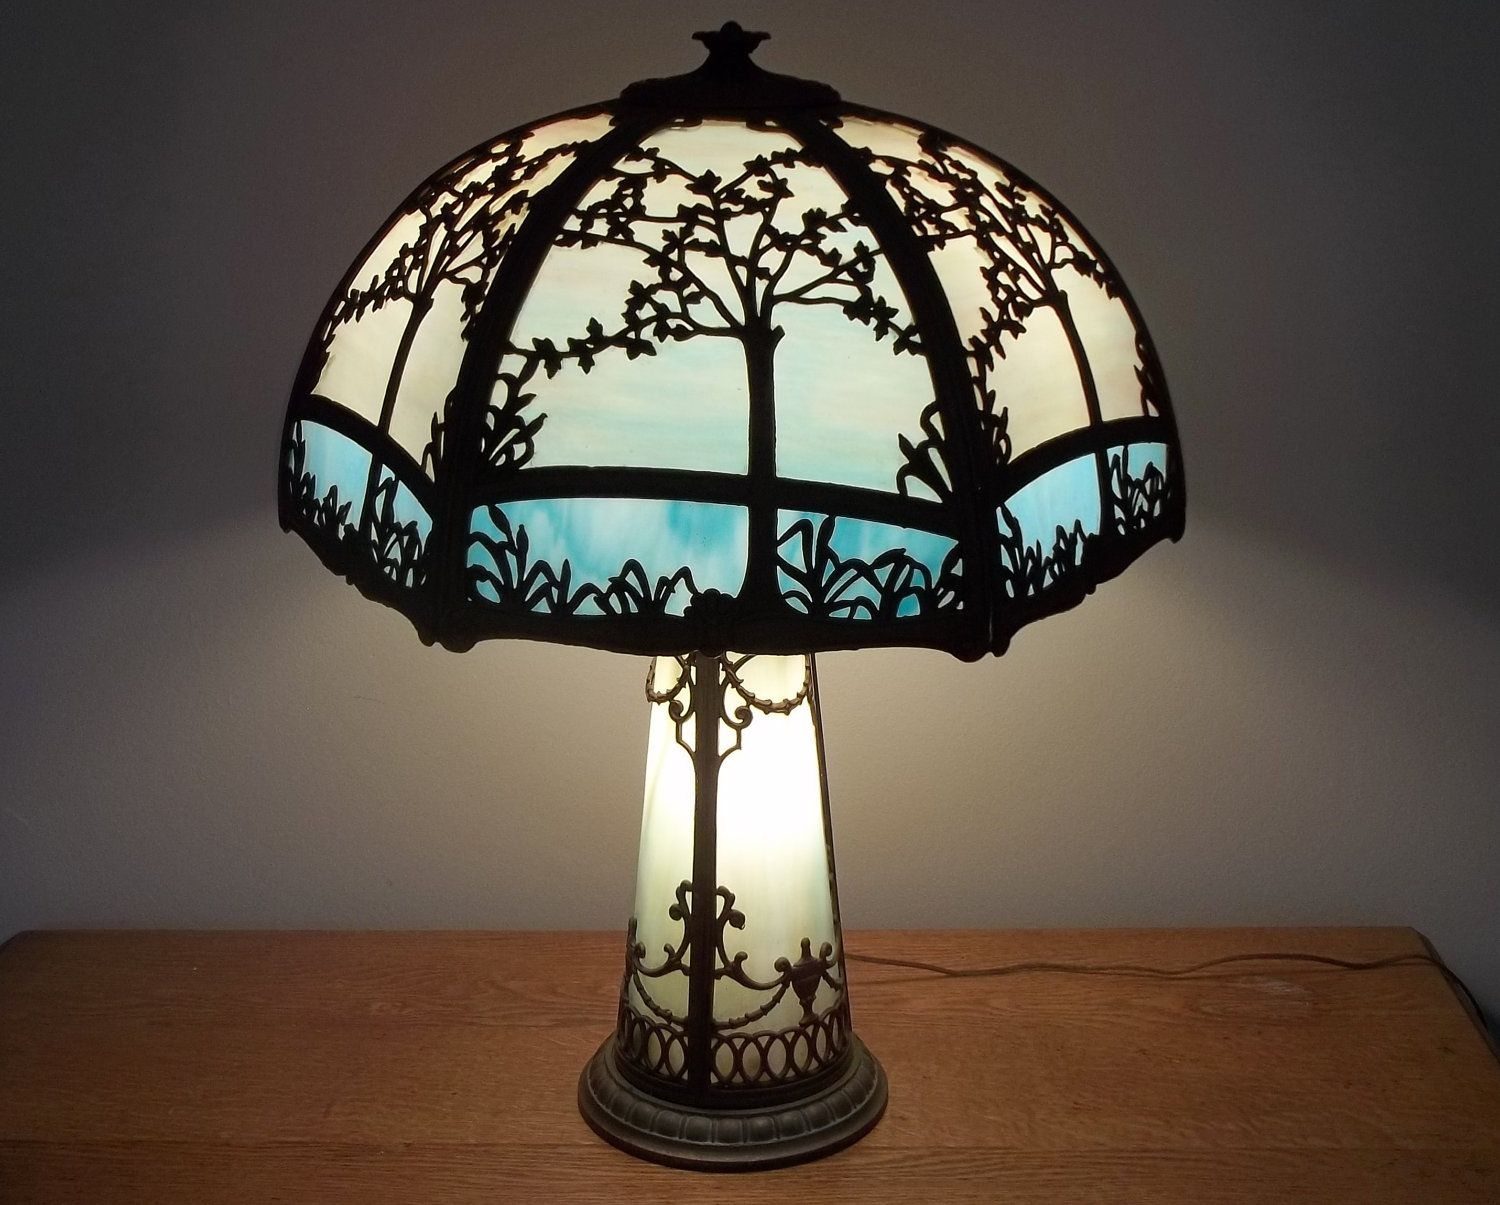 Pin On Lamps And Lighting